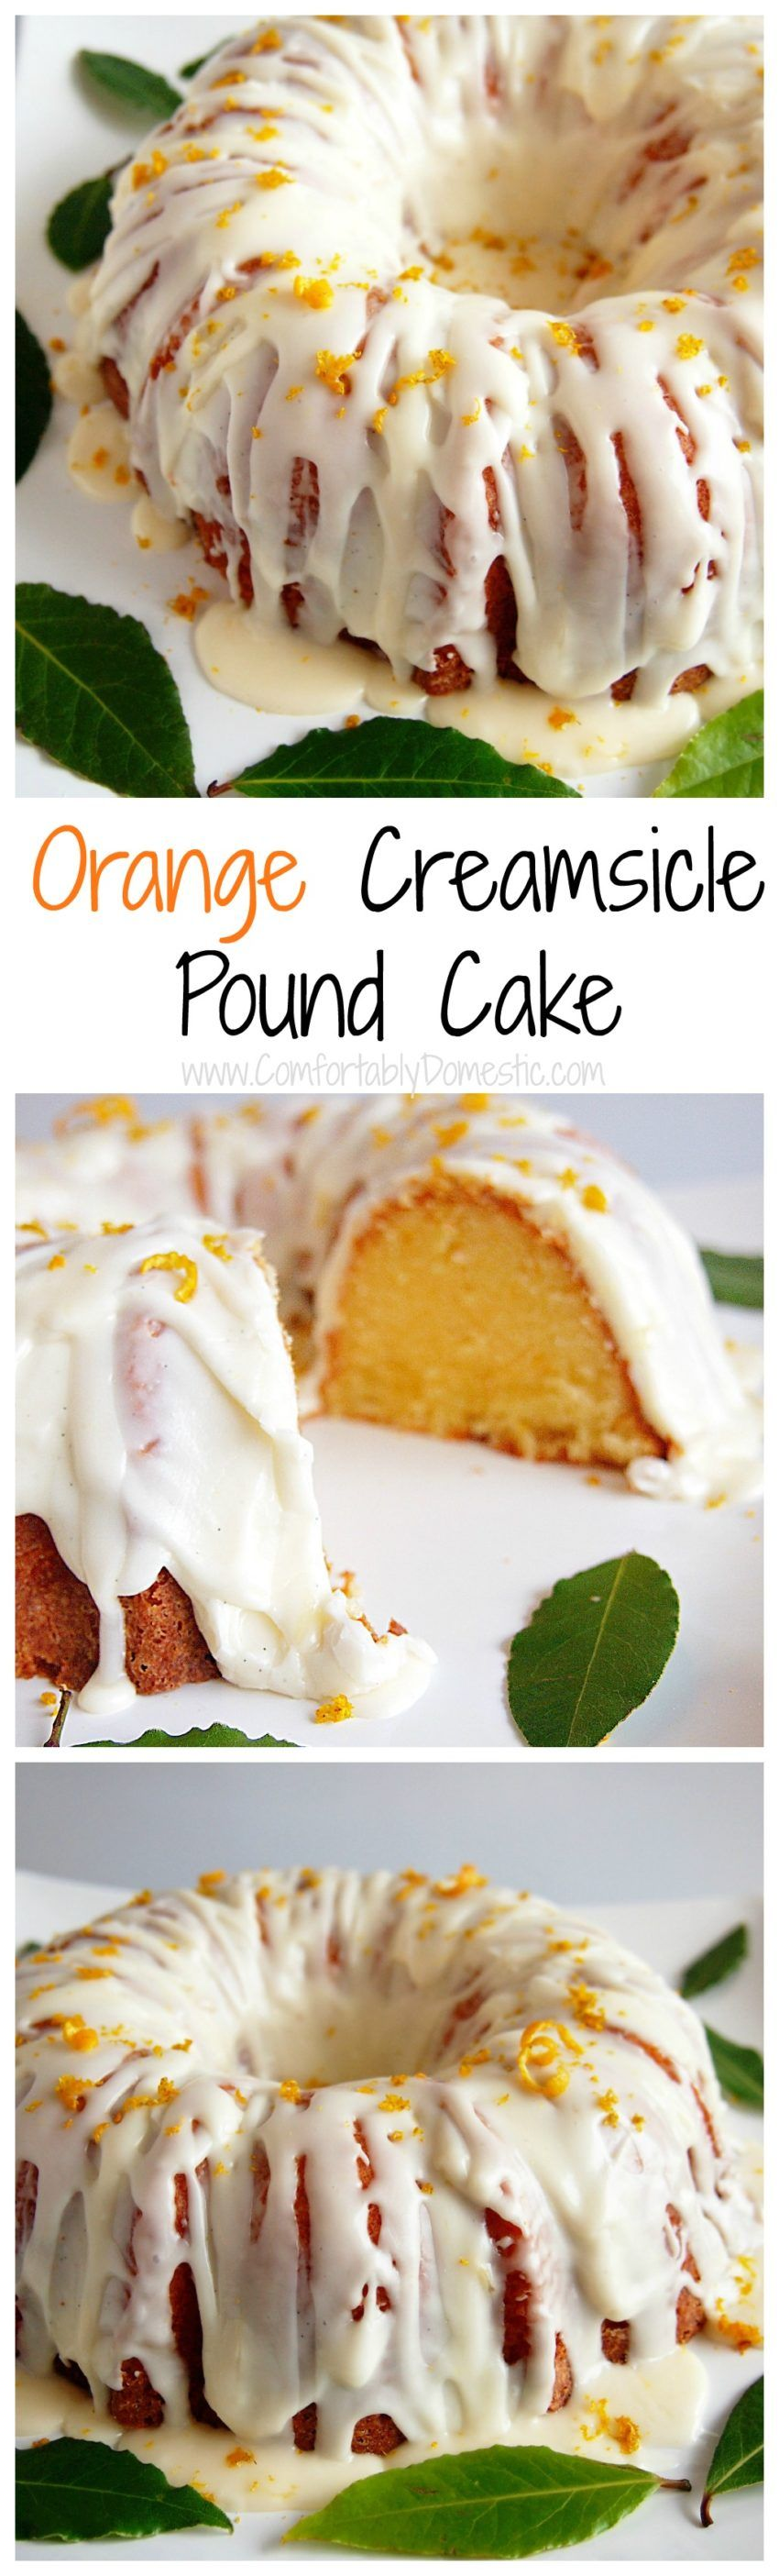 Creamsicle Pound Cake - Comfortably Domestic Orange Creamsicle Pound Cake marries zesty orange pound cake with creamy vanilla icing that's reminiscent of the favorite frozen treat of childhood.Orange Creamsicle Pound Cake marries zesty orange pound cake with creamy vanilla icing that's reminiscent of the favorite frozen treat of childhood.